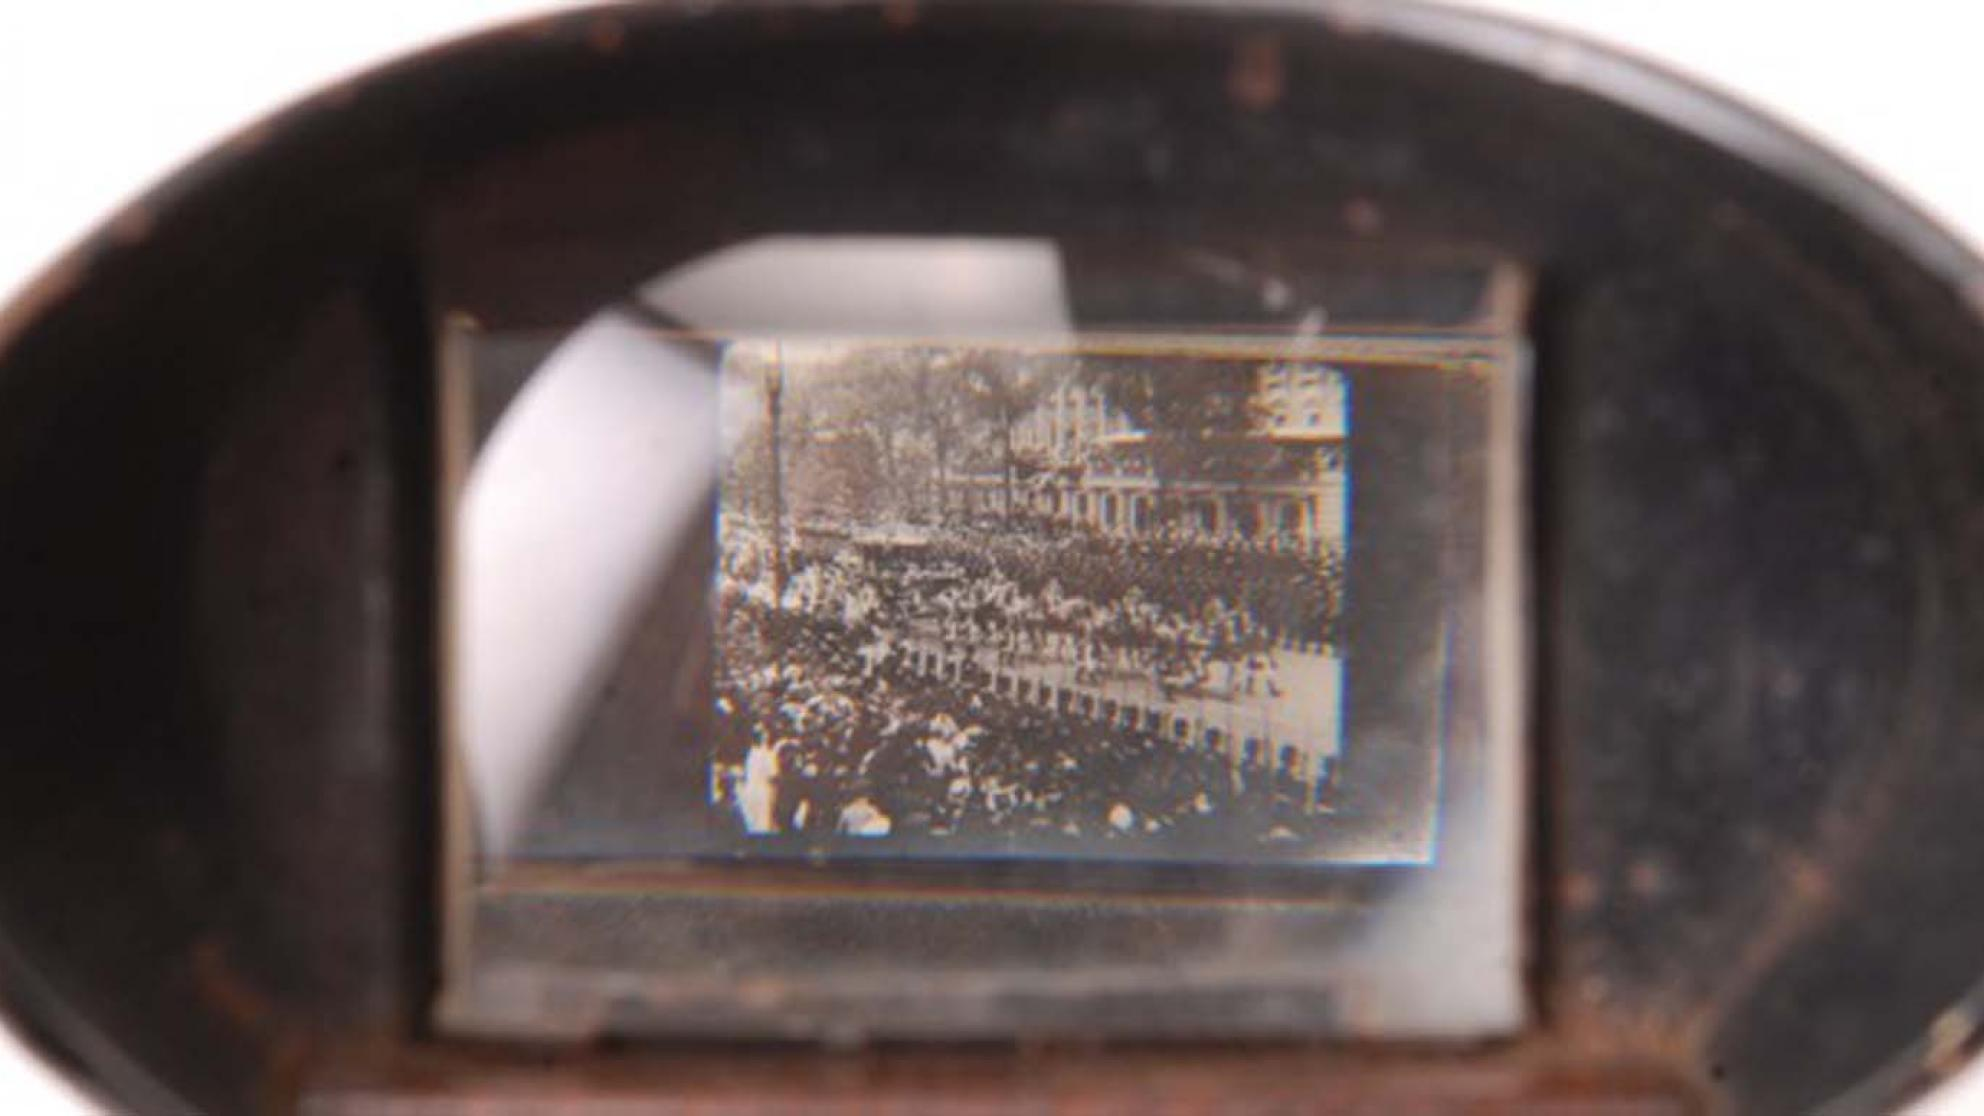 Looking through the viewing lens of a kinora at an image of a crowd scene.